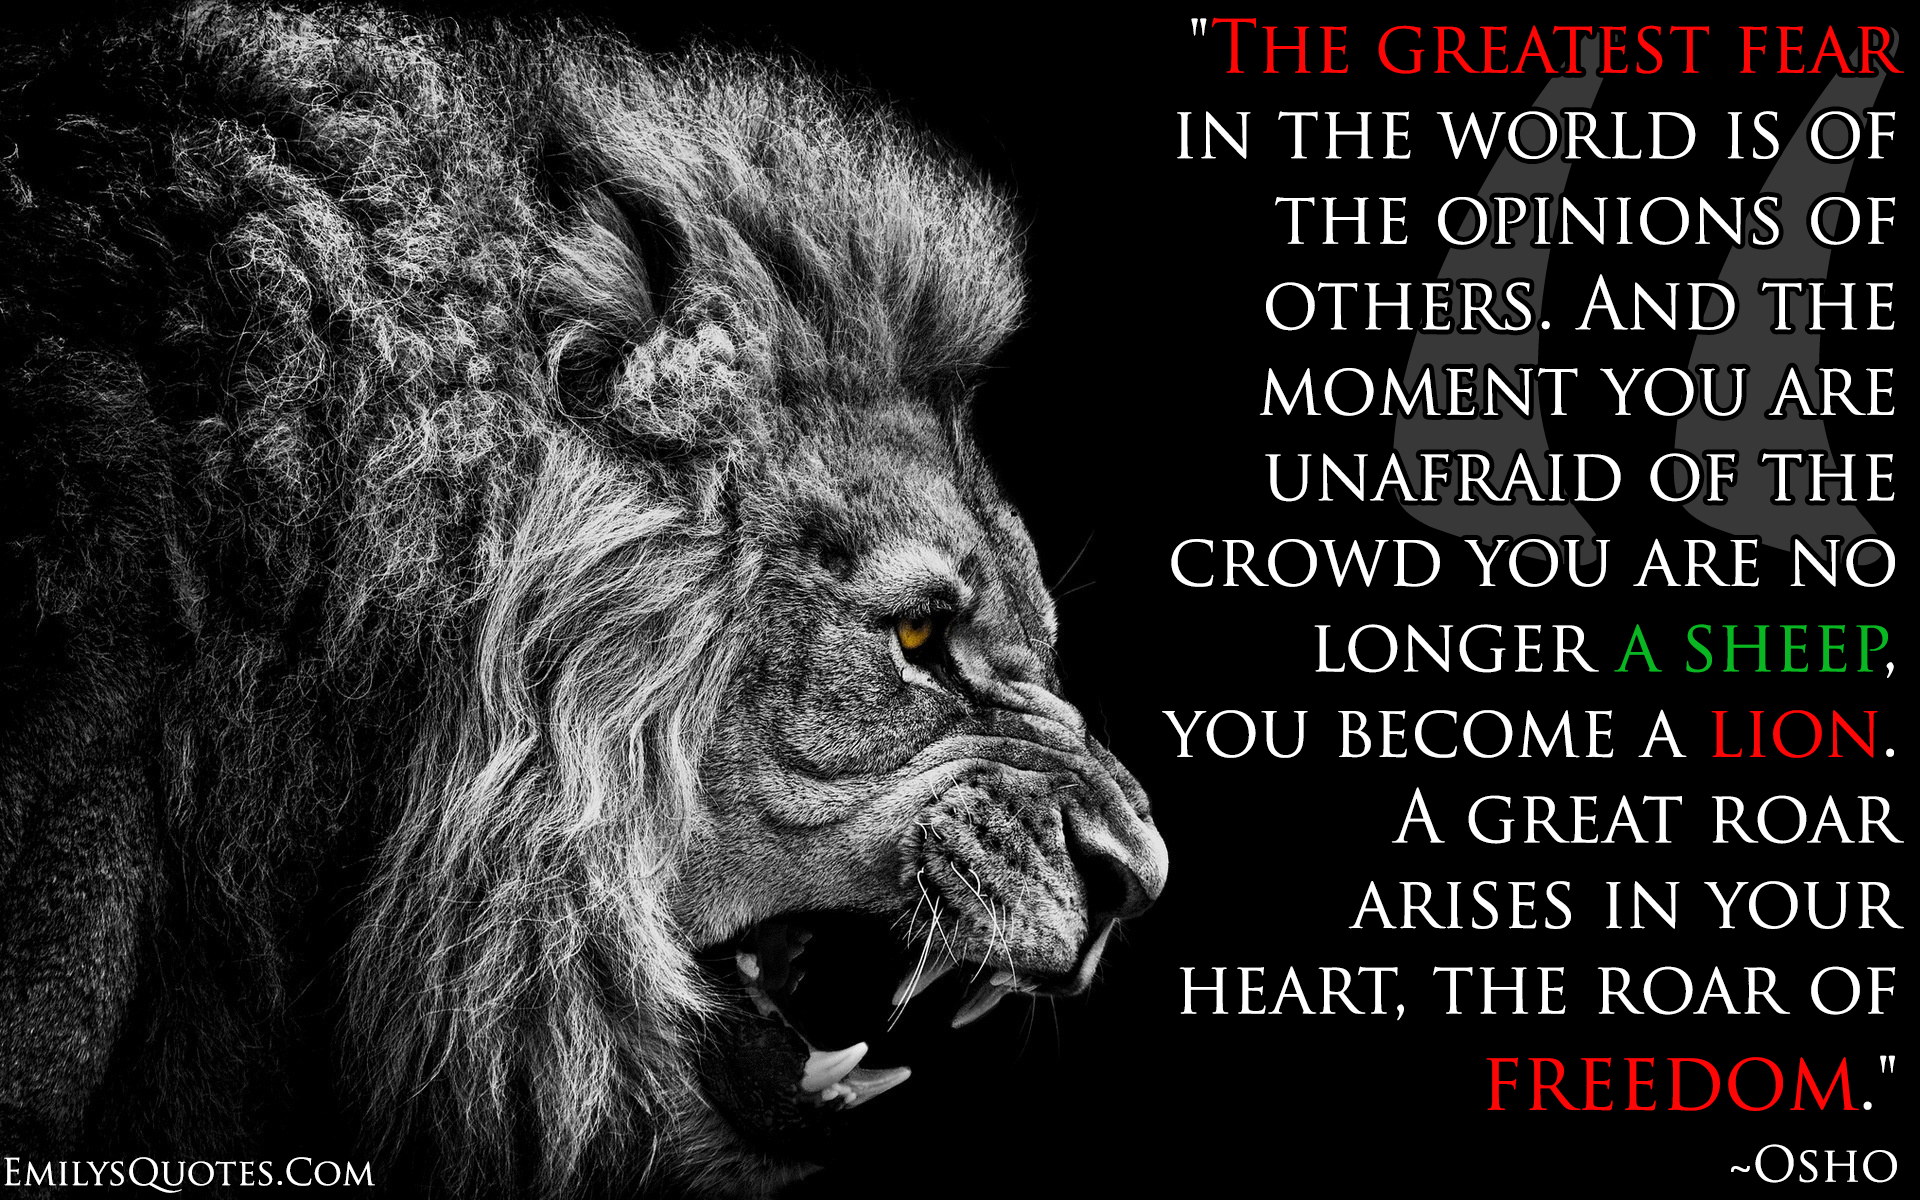 EmilysQuotes.Com - wisdom, freedom, fear, amazing, great, lion, Inspirational, motivational